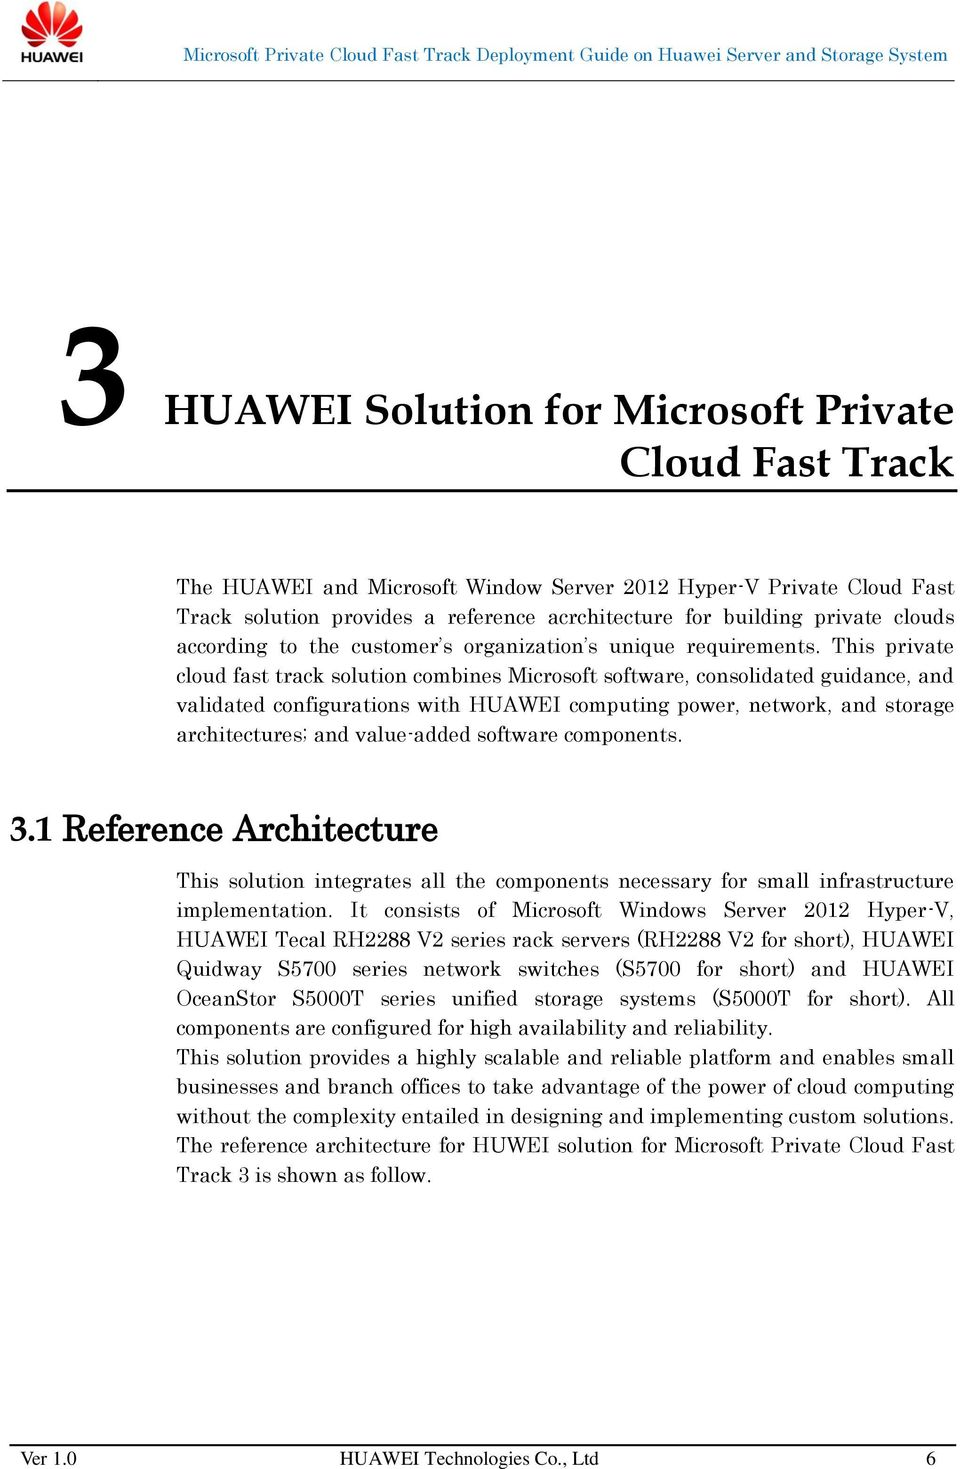 This private cloud fast track solution combines Microsoft software, consolidated guidance, and validated configurations with HUAWEI computing power, network, and storage architectures; and